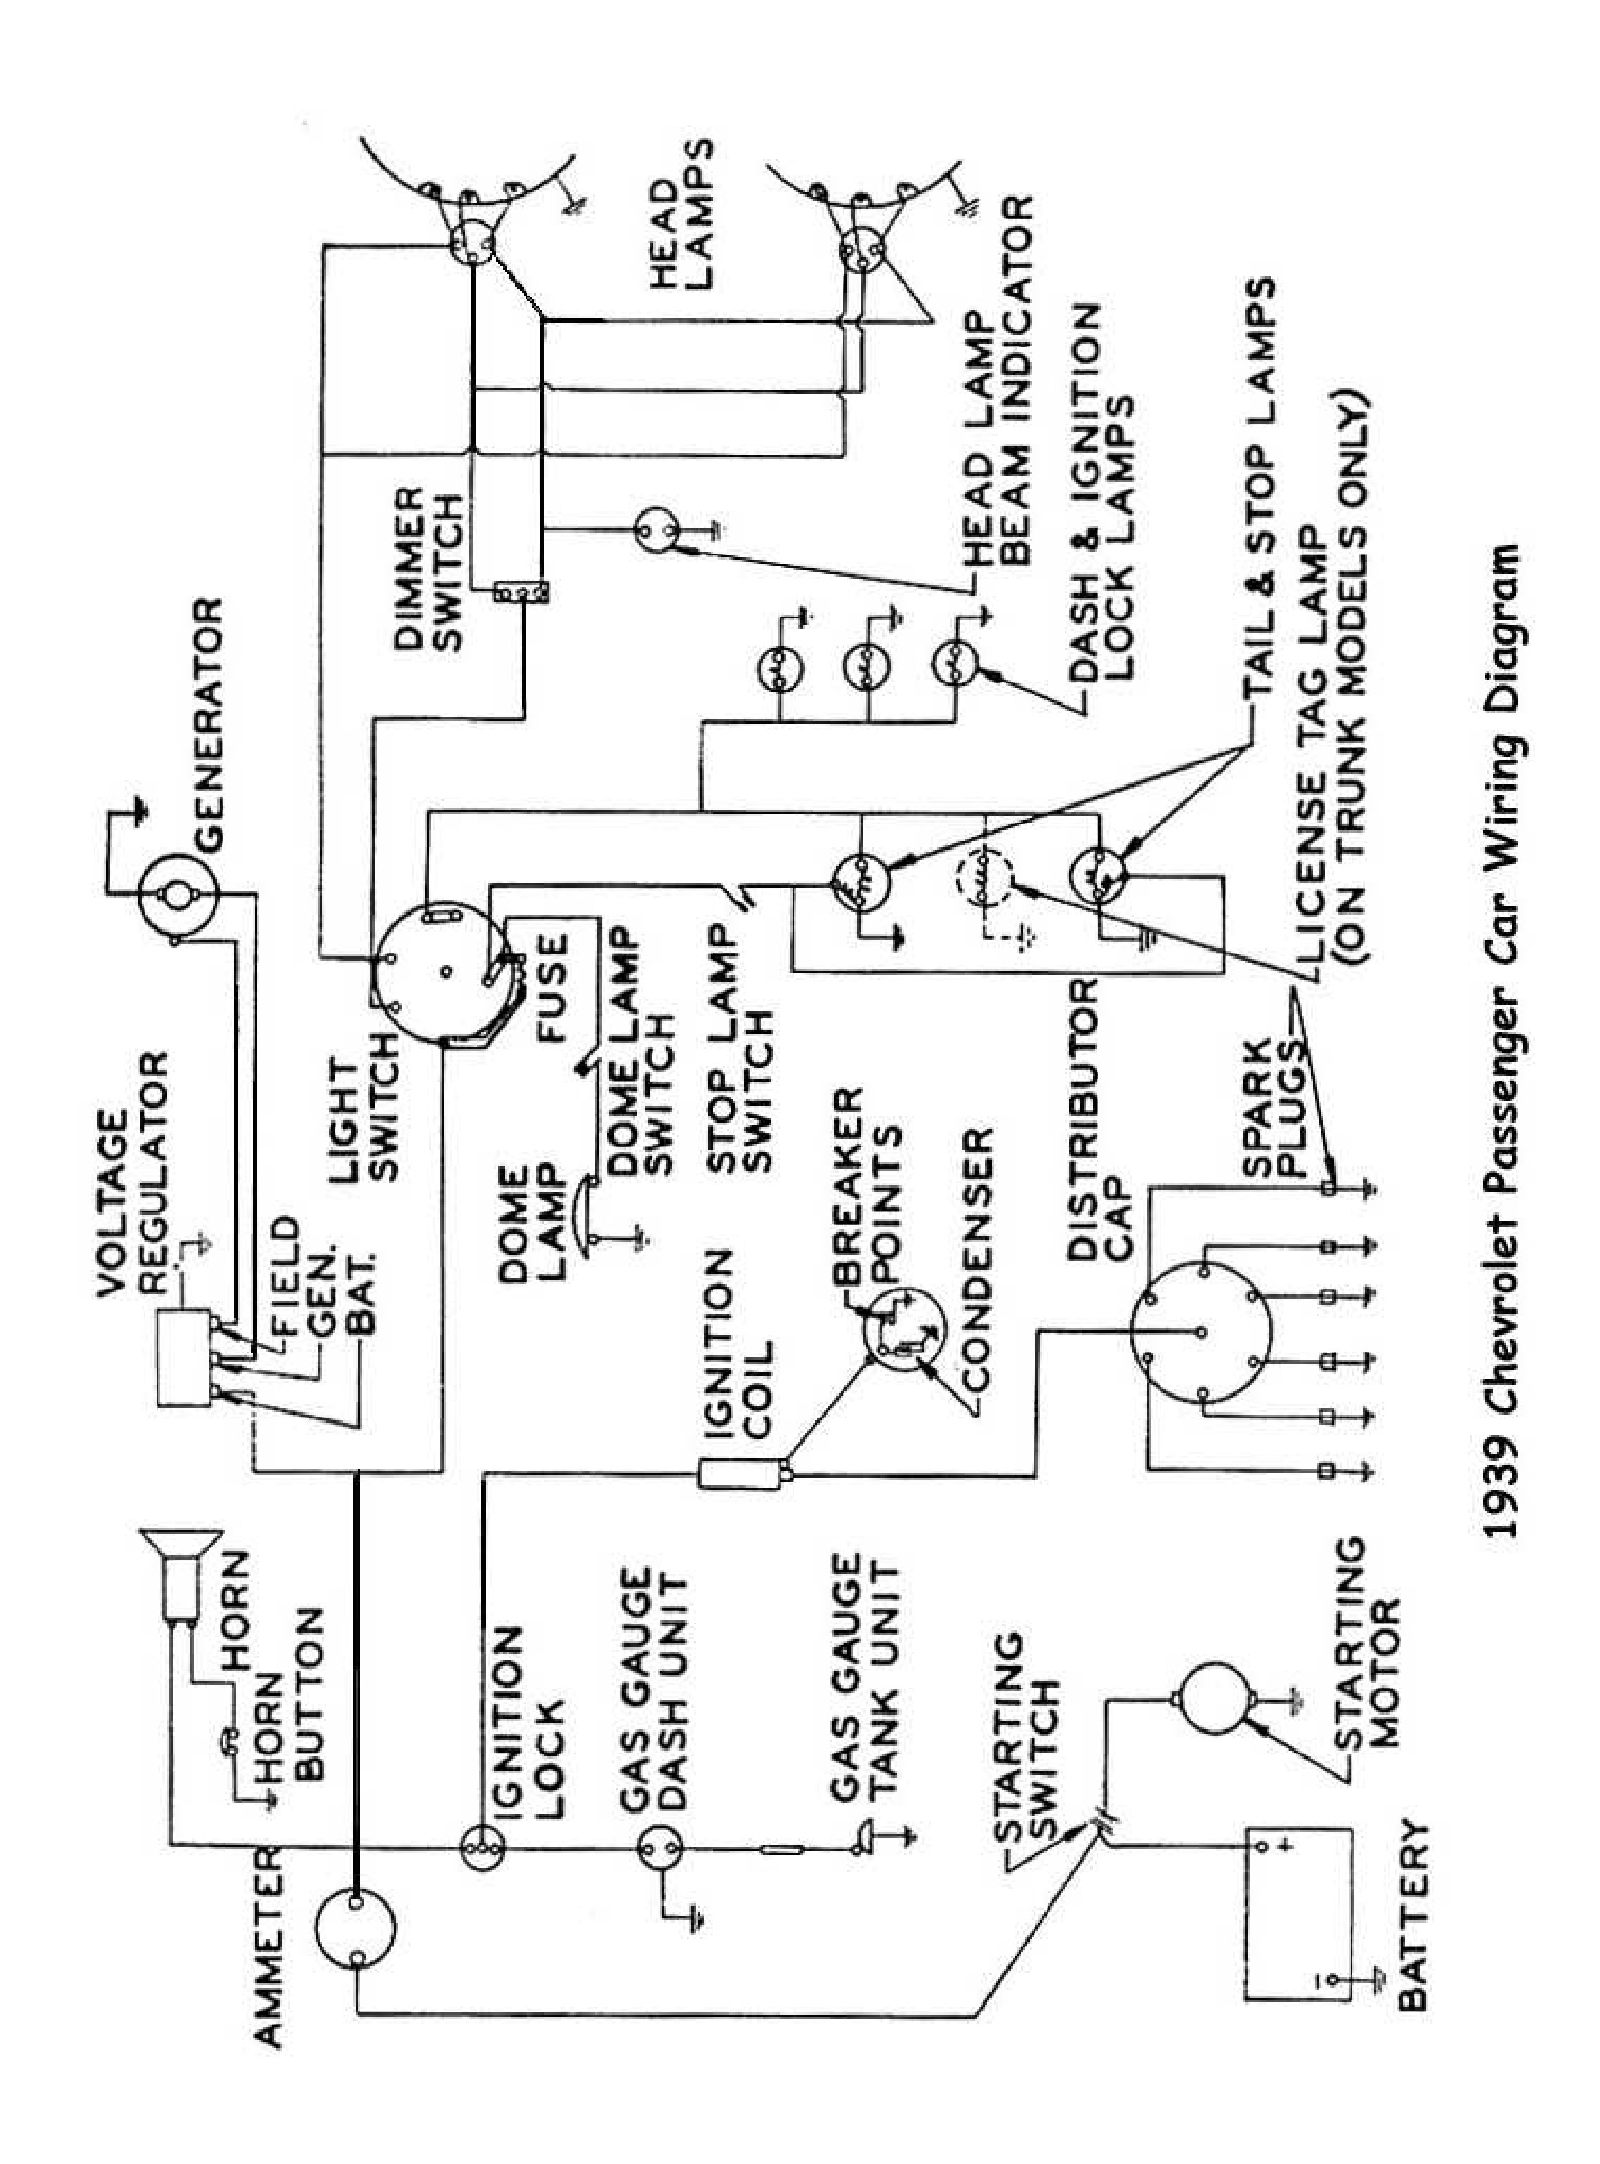 Chevy Wiring Diagrams Control Valve On 2000 Buick Lesabre Ignition Switch Diagram 1939 Passenger Car